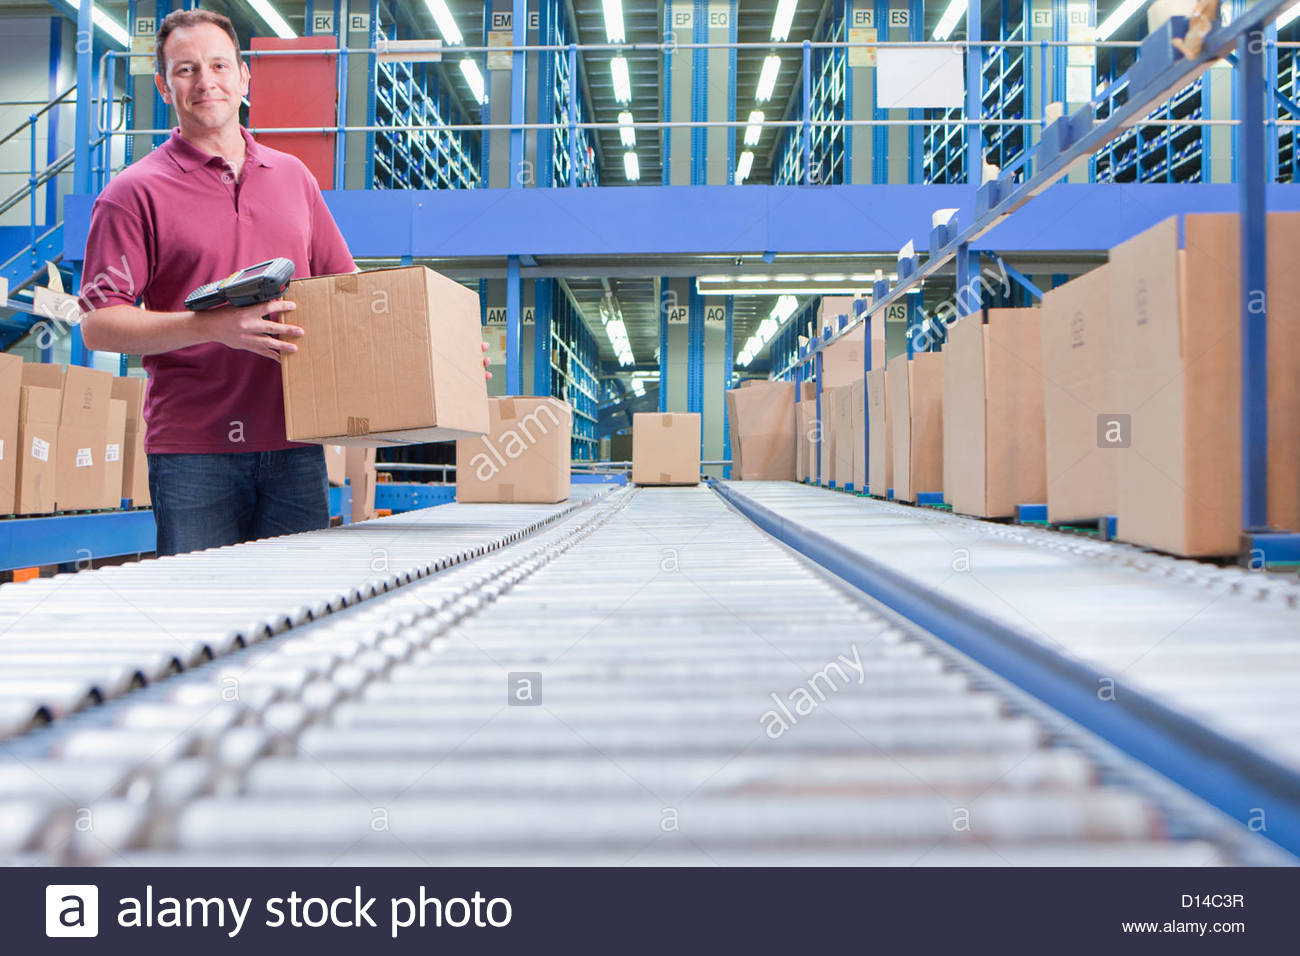 Portrait of smiling worker with bar code reader and box at conveyor belt in distribution warehouse - Stock Image